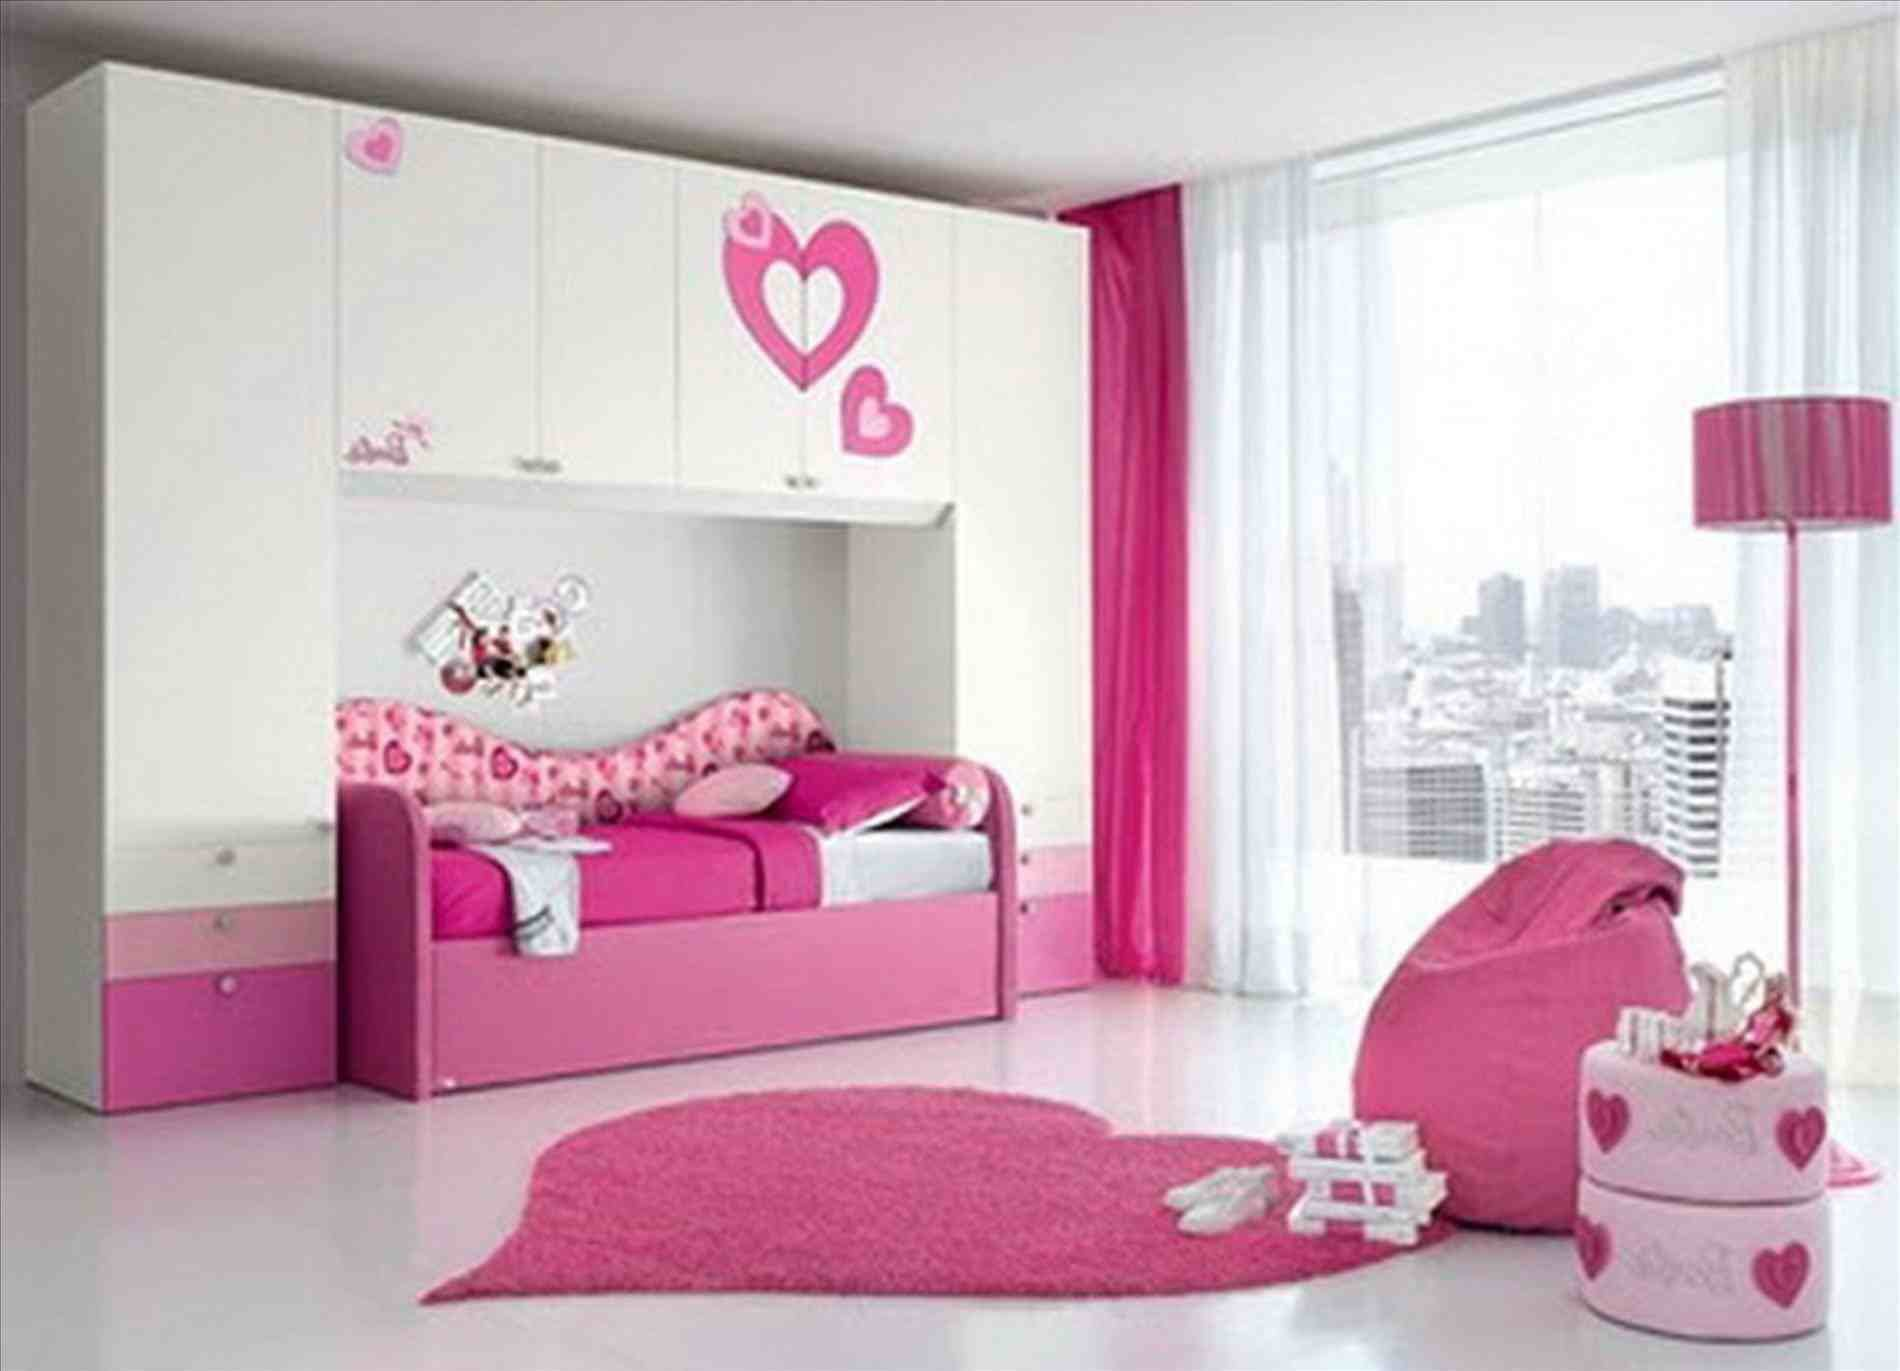 Best Bedroom Decorating Ideas For Teenage Girls On A Budget With Pictures